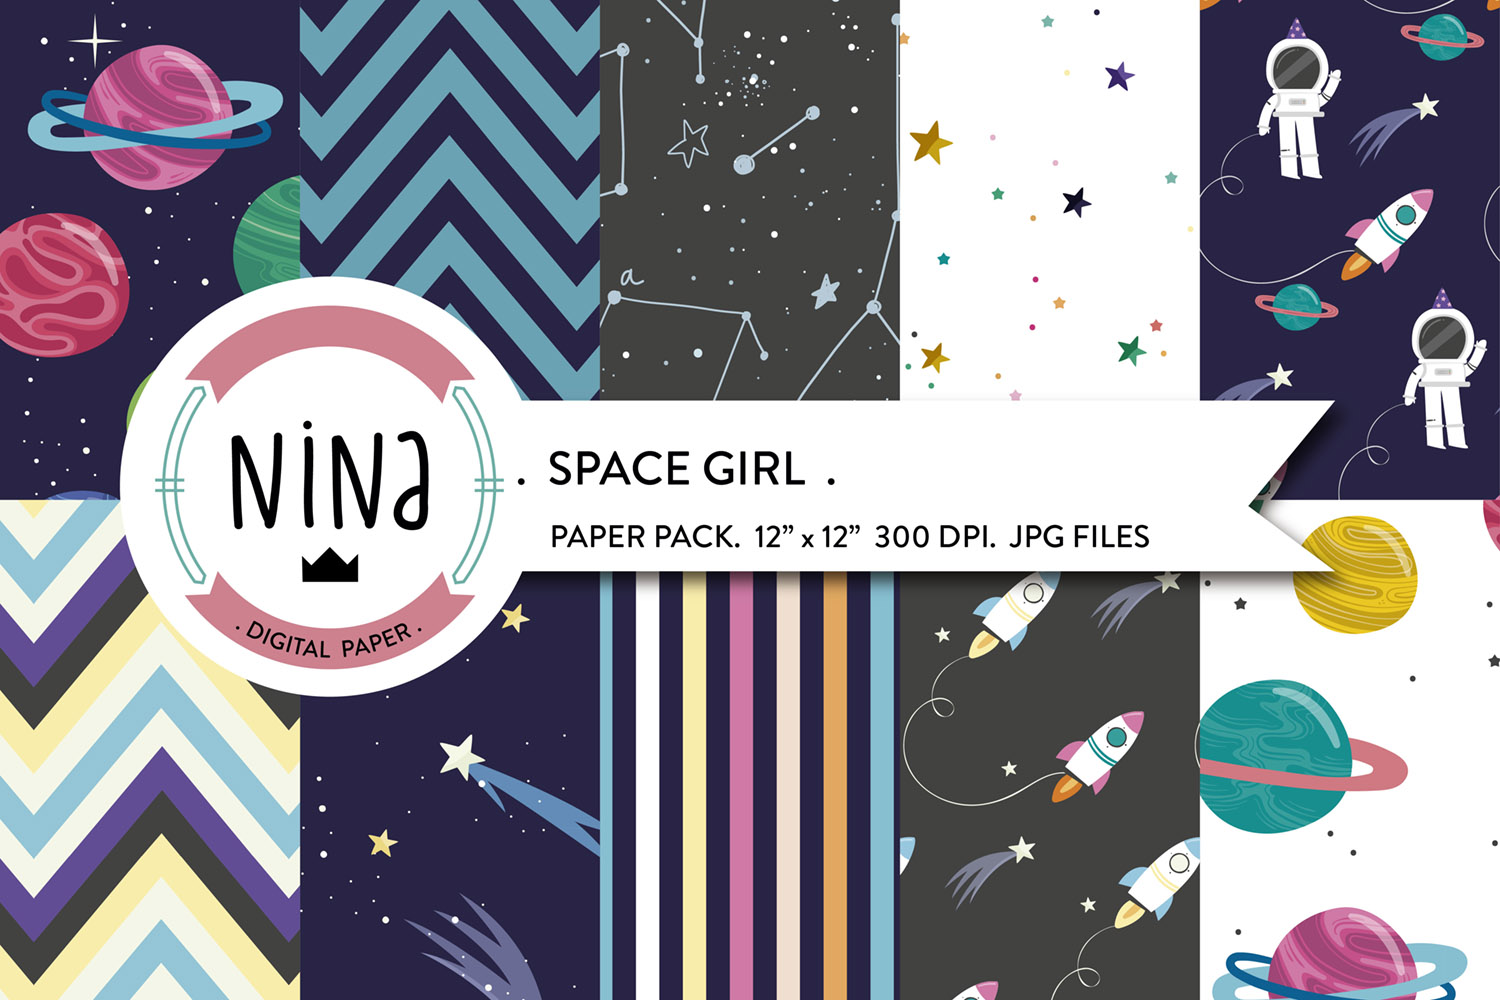 Space Girl Digital Paper, Outer Space (Graphic) By Nina